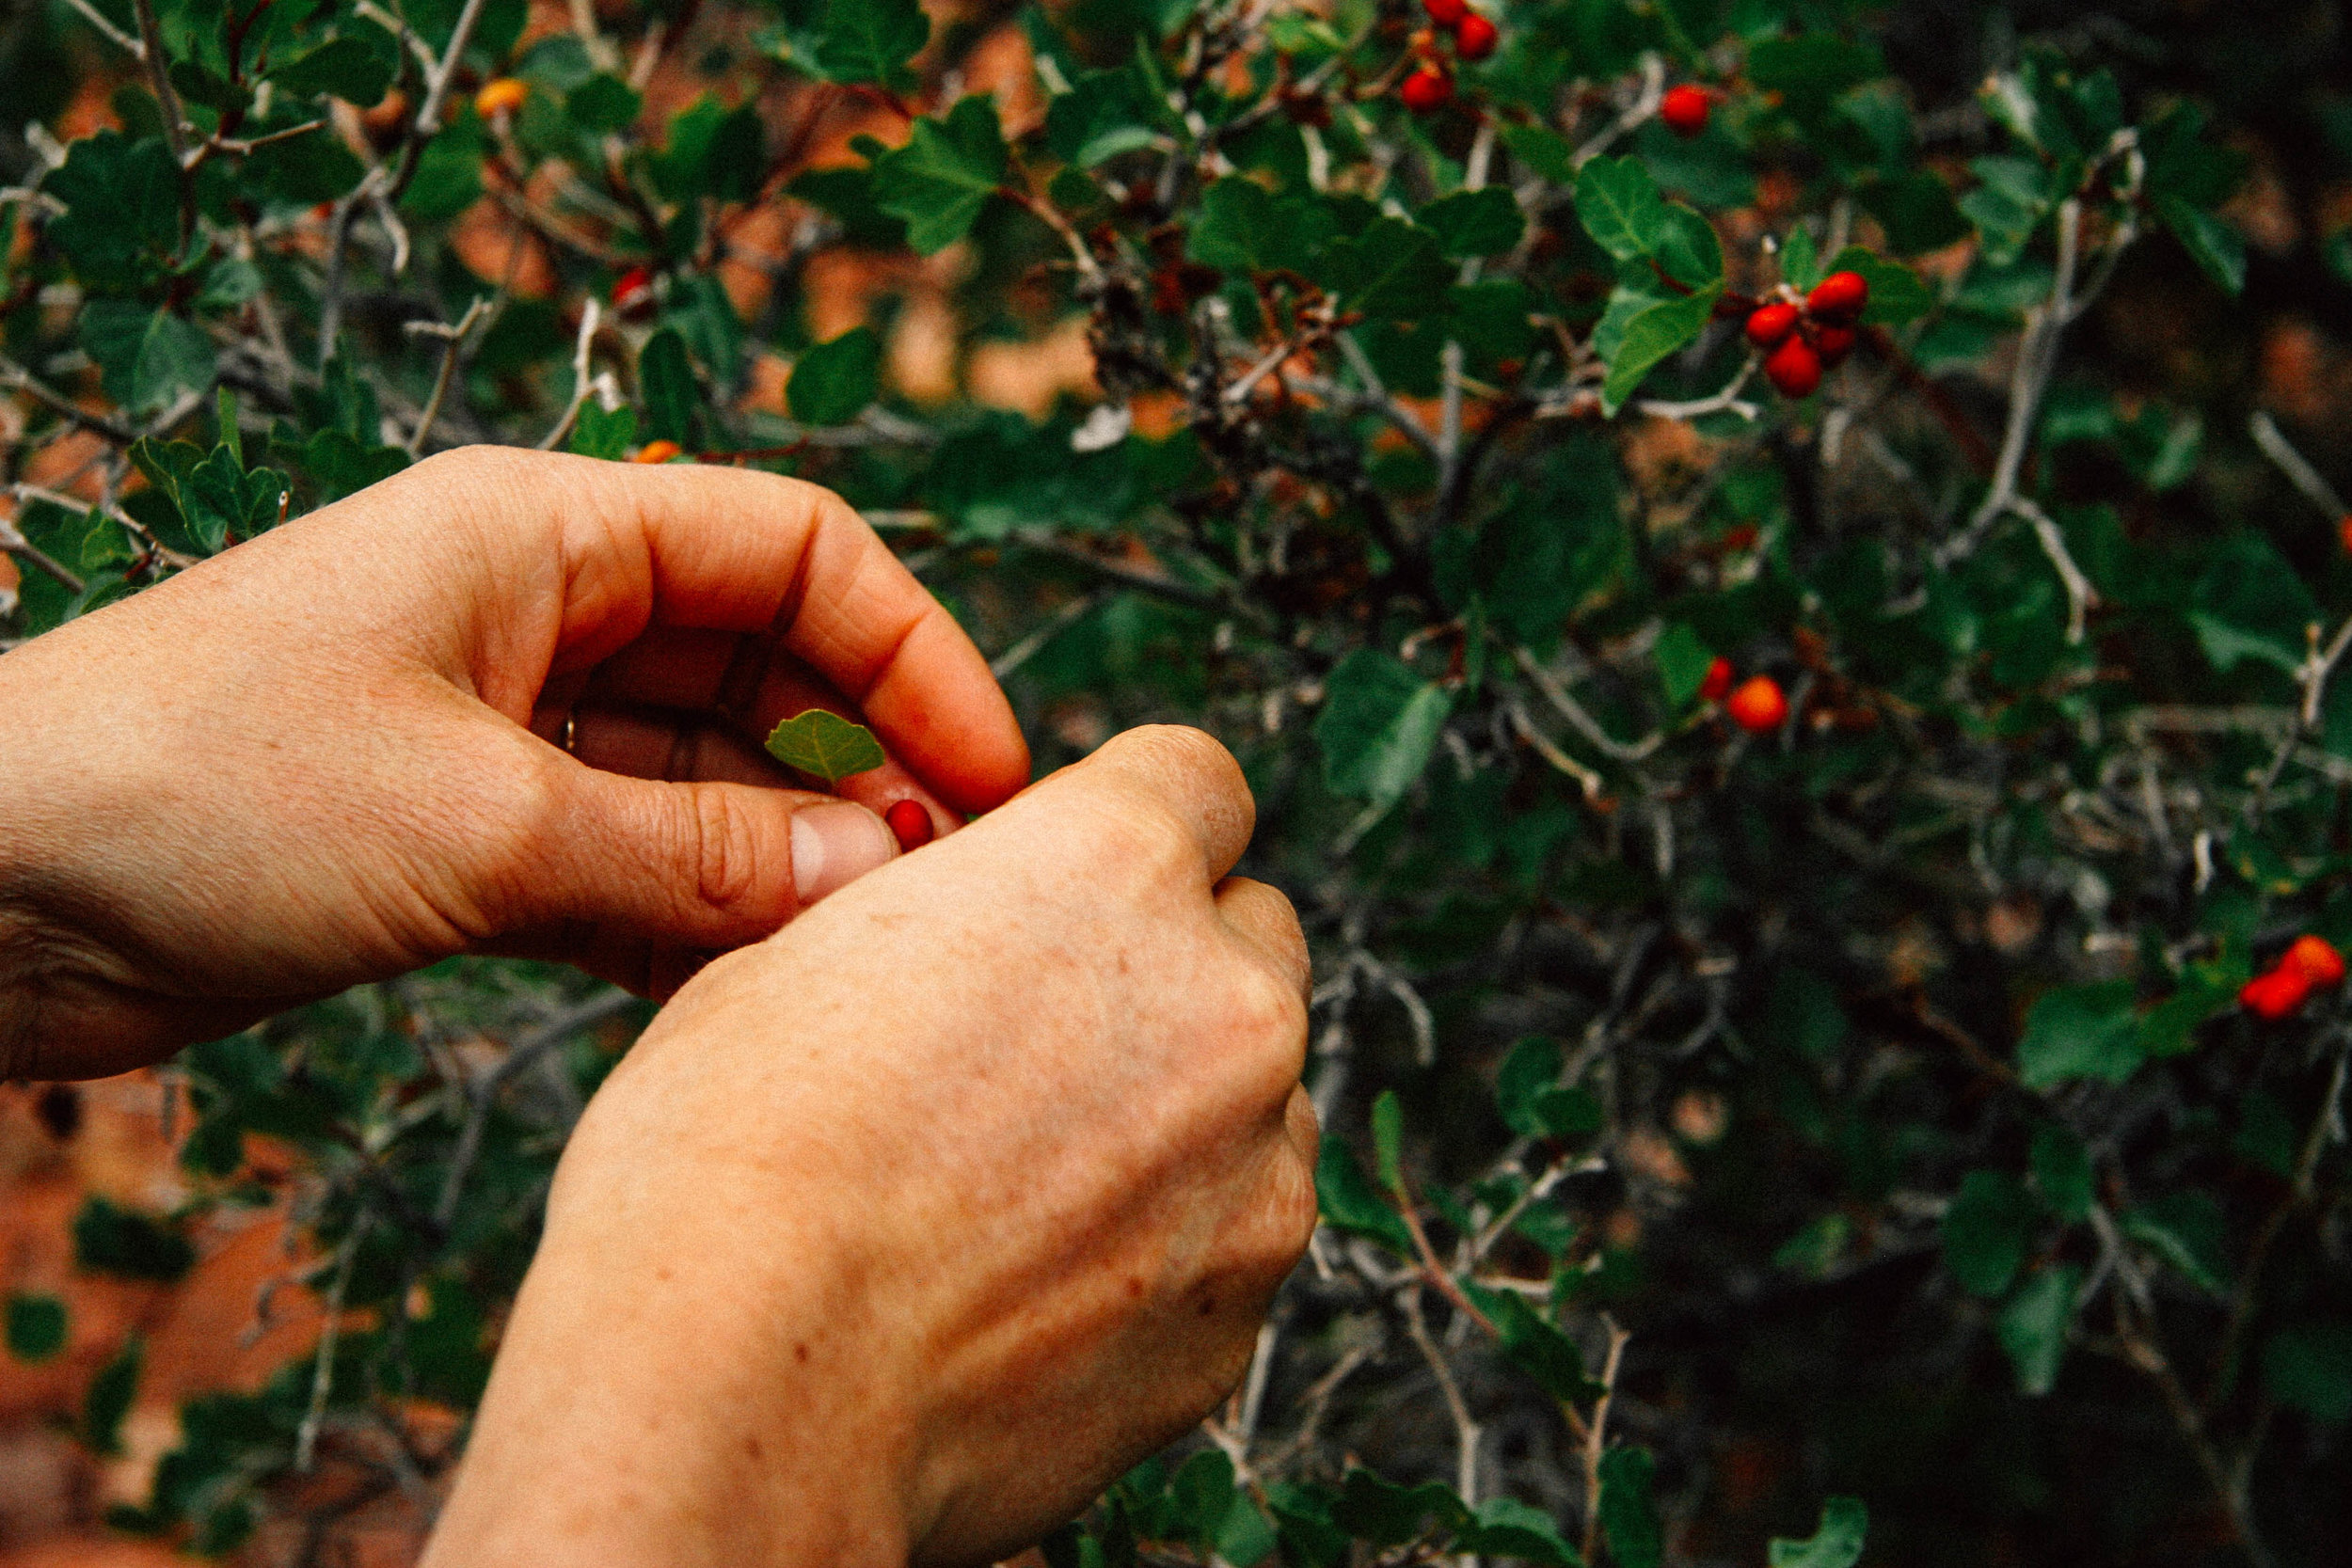 With Emily Stock, eating the Vitamin C rich berries of Three-Leafed Sumac, Sourberry, Skunkbush,  Rhus trilobata  (Anacardiaceae)